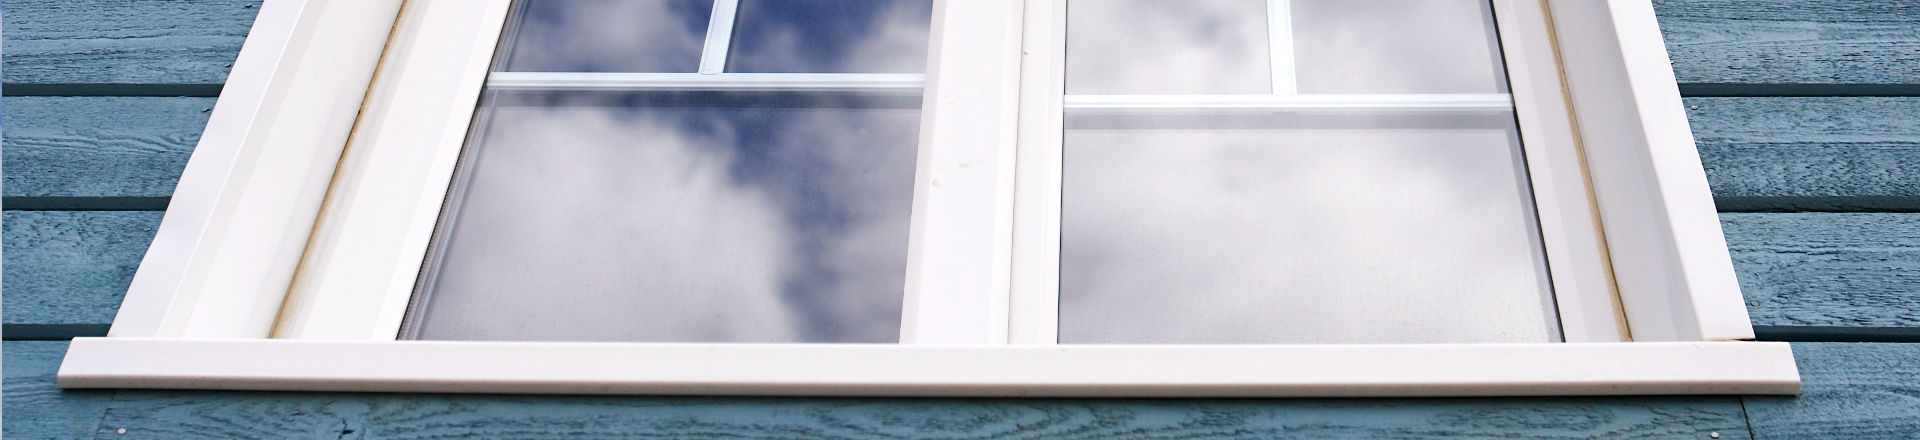 Exmoor Fascias Window in North Devon